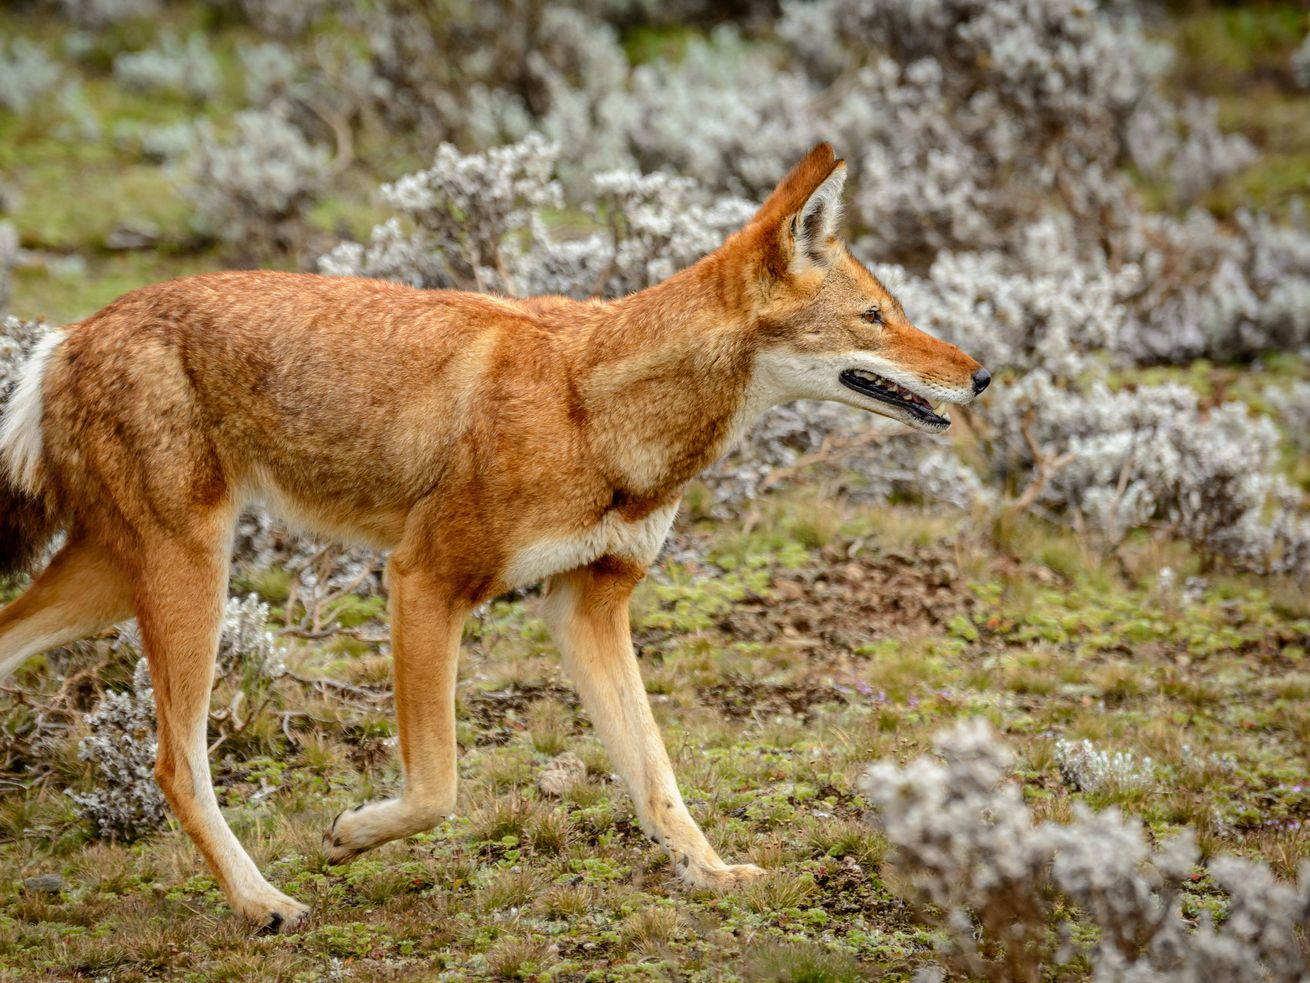 Ethiopian wolf, Canis simensis, also know as Abyssinian wolf, Simien wolf, Simien jackal, Ethiopian jackal, red fox, red jackal, in Bale Mountains National Park, Ethiopia.